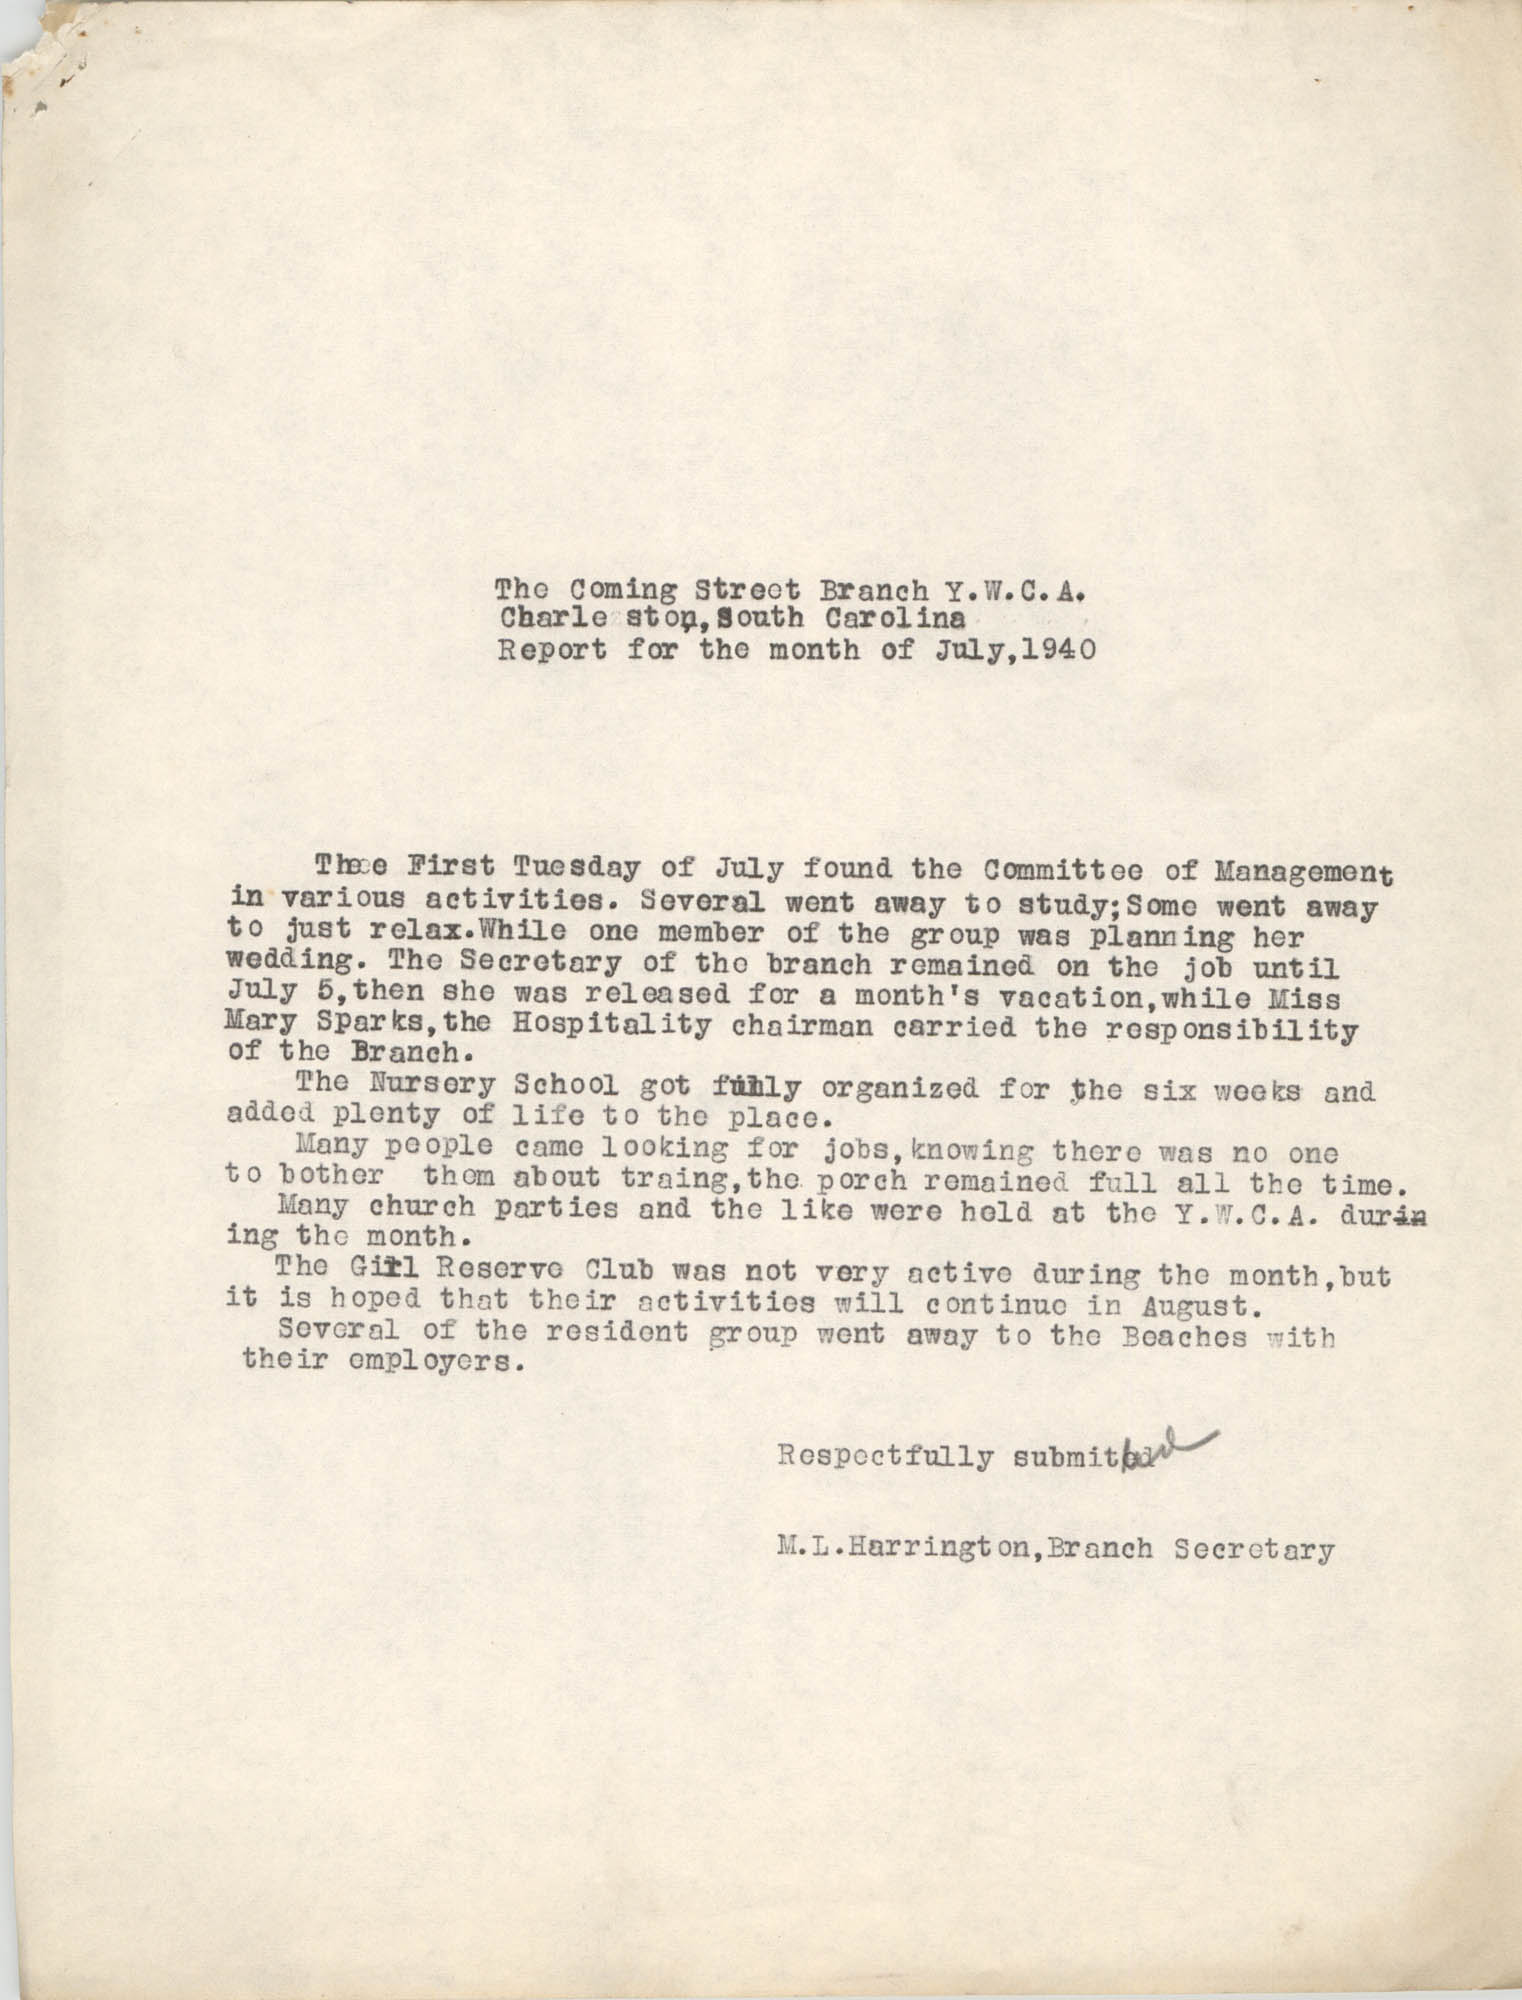 Monthly Report for the Coming Street Y.W.C.A., July 1940